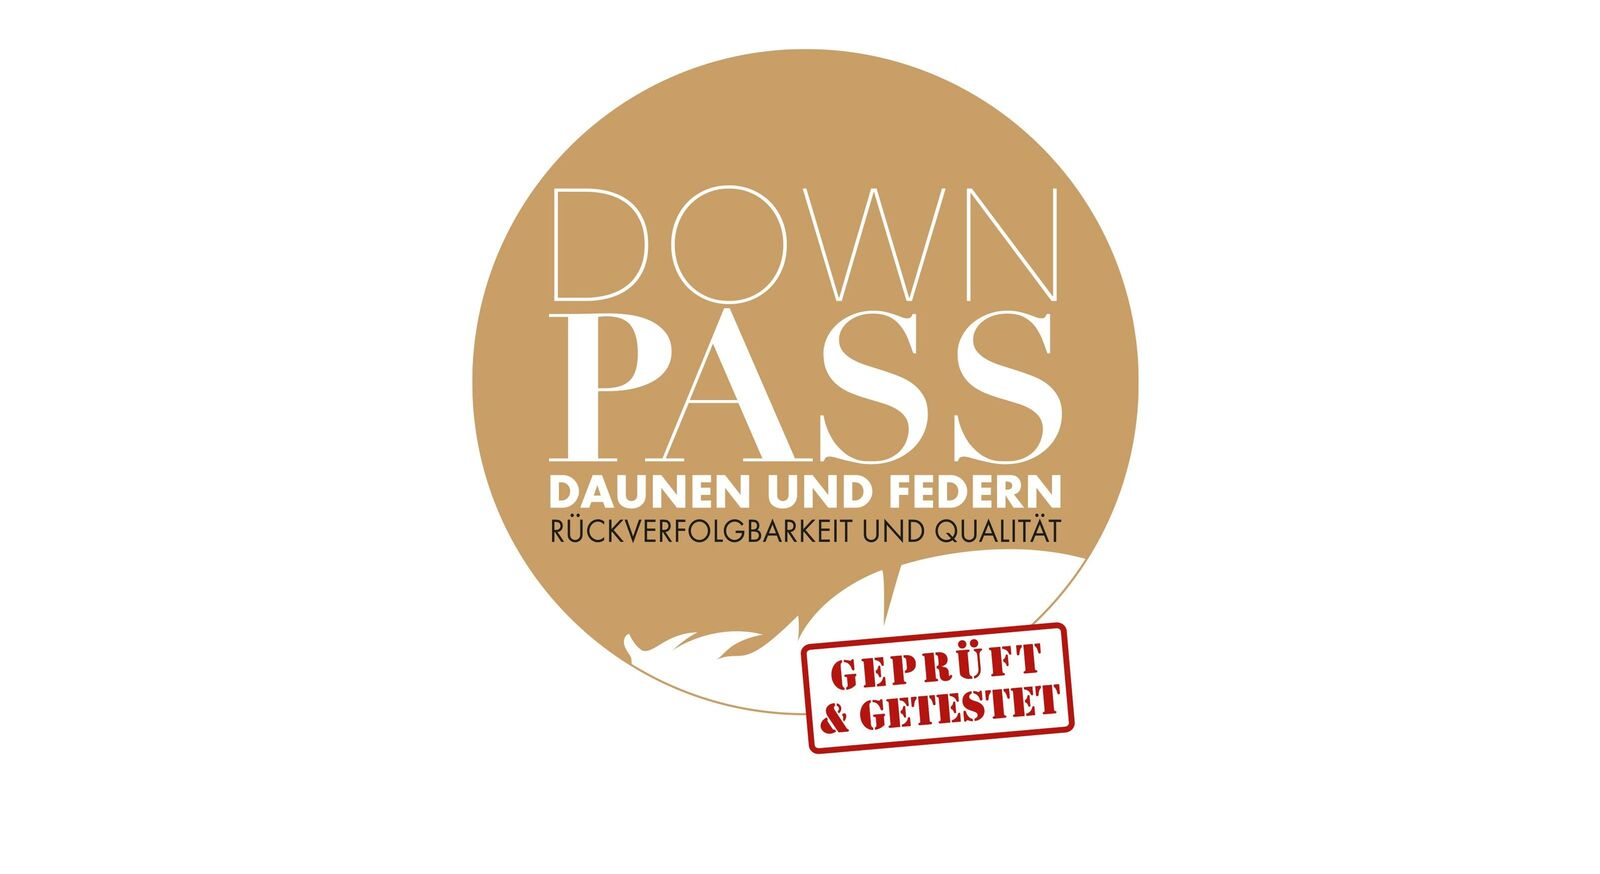 Daunen-Bettdecken orthowell mit Down-Pass Siegel